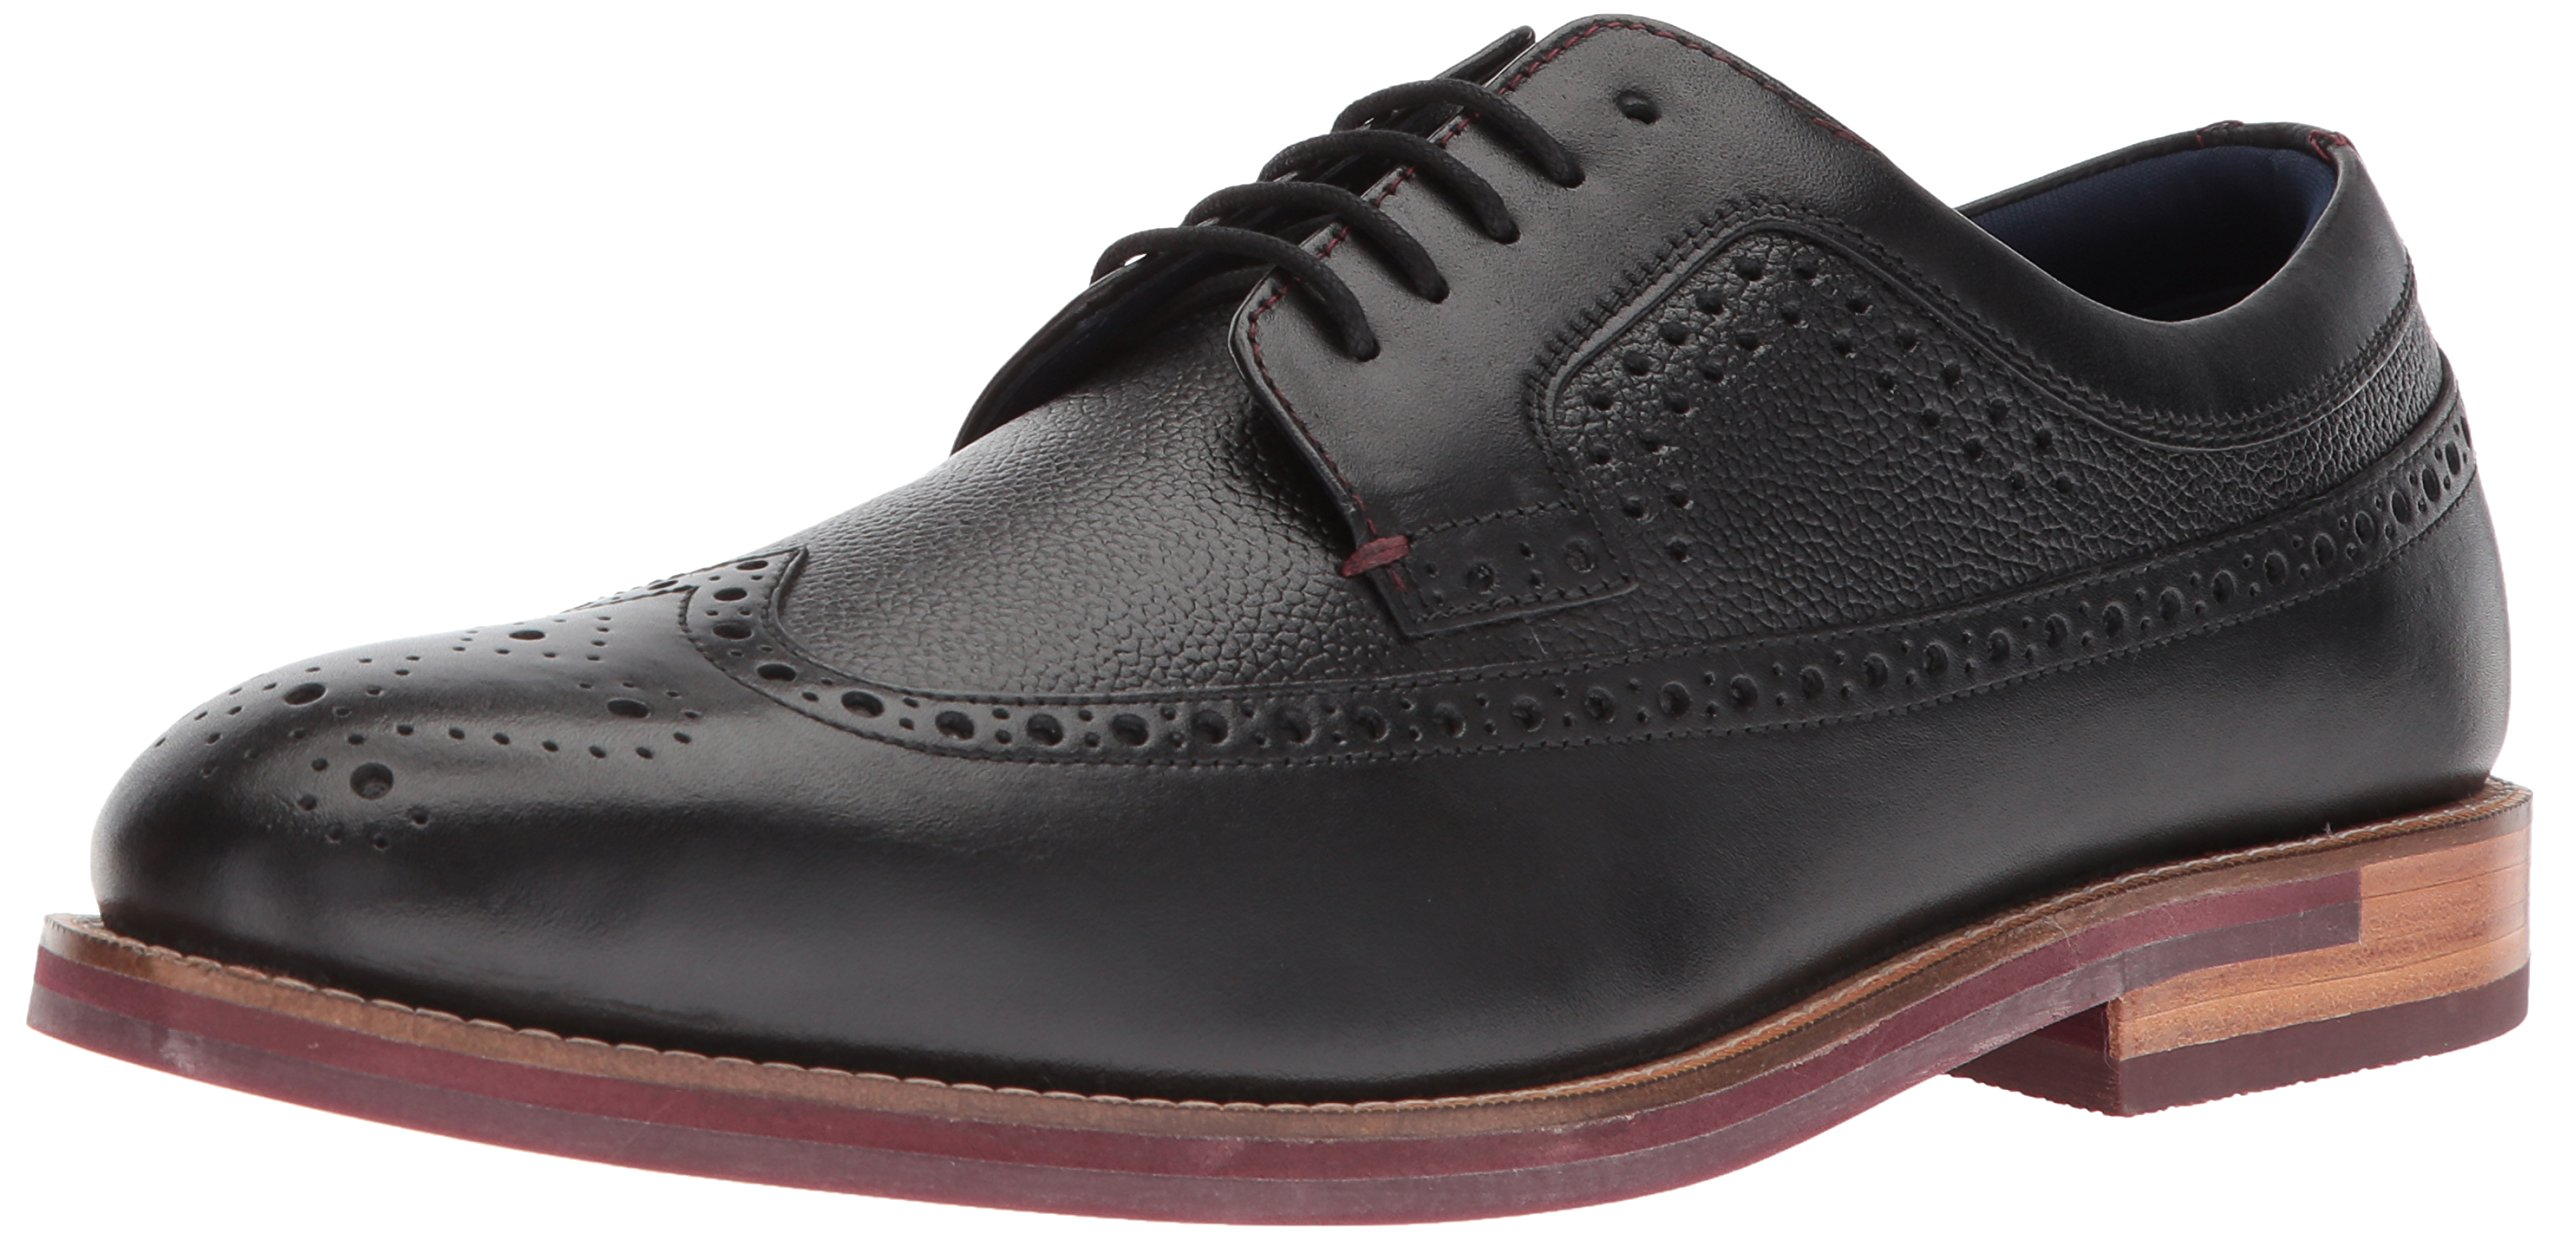 Ted Baker Men's Deelani Oxford, Black Leather, 7 D(M) US